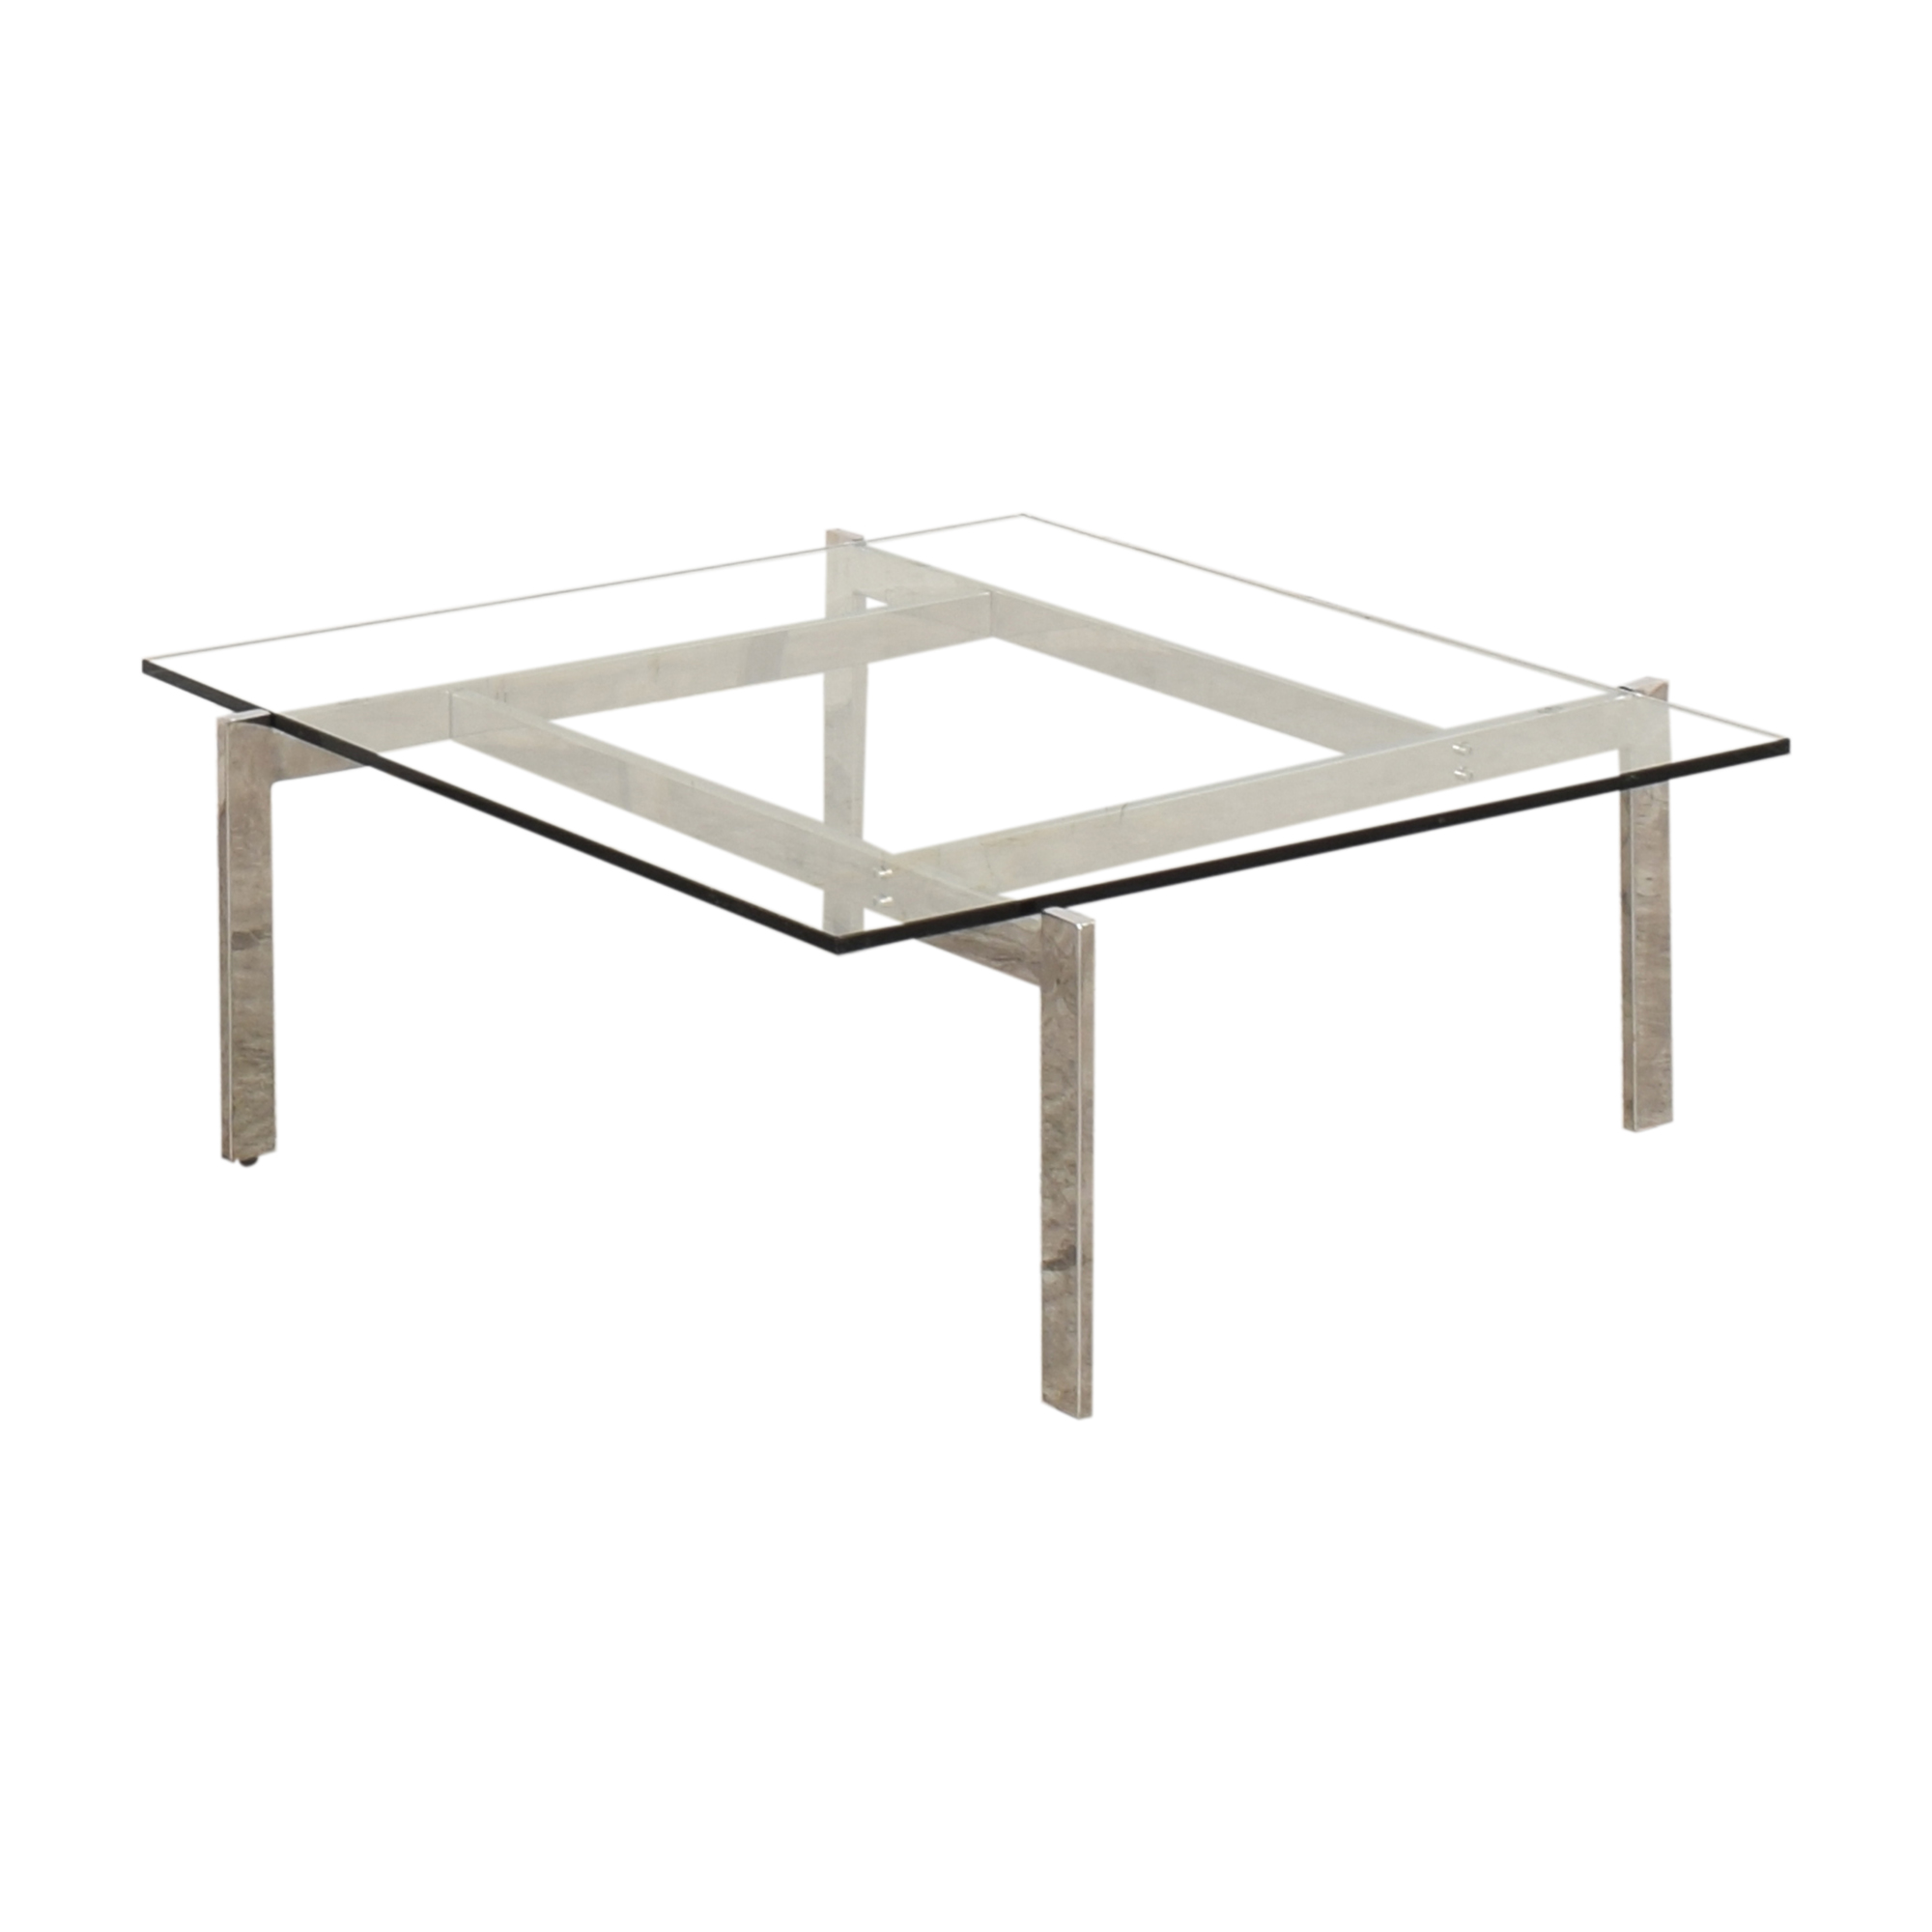 PK61-Style Coffee Table dimensions